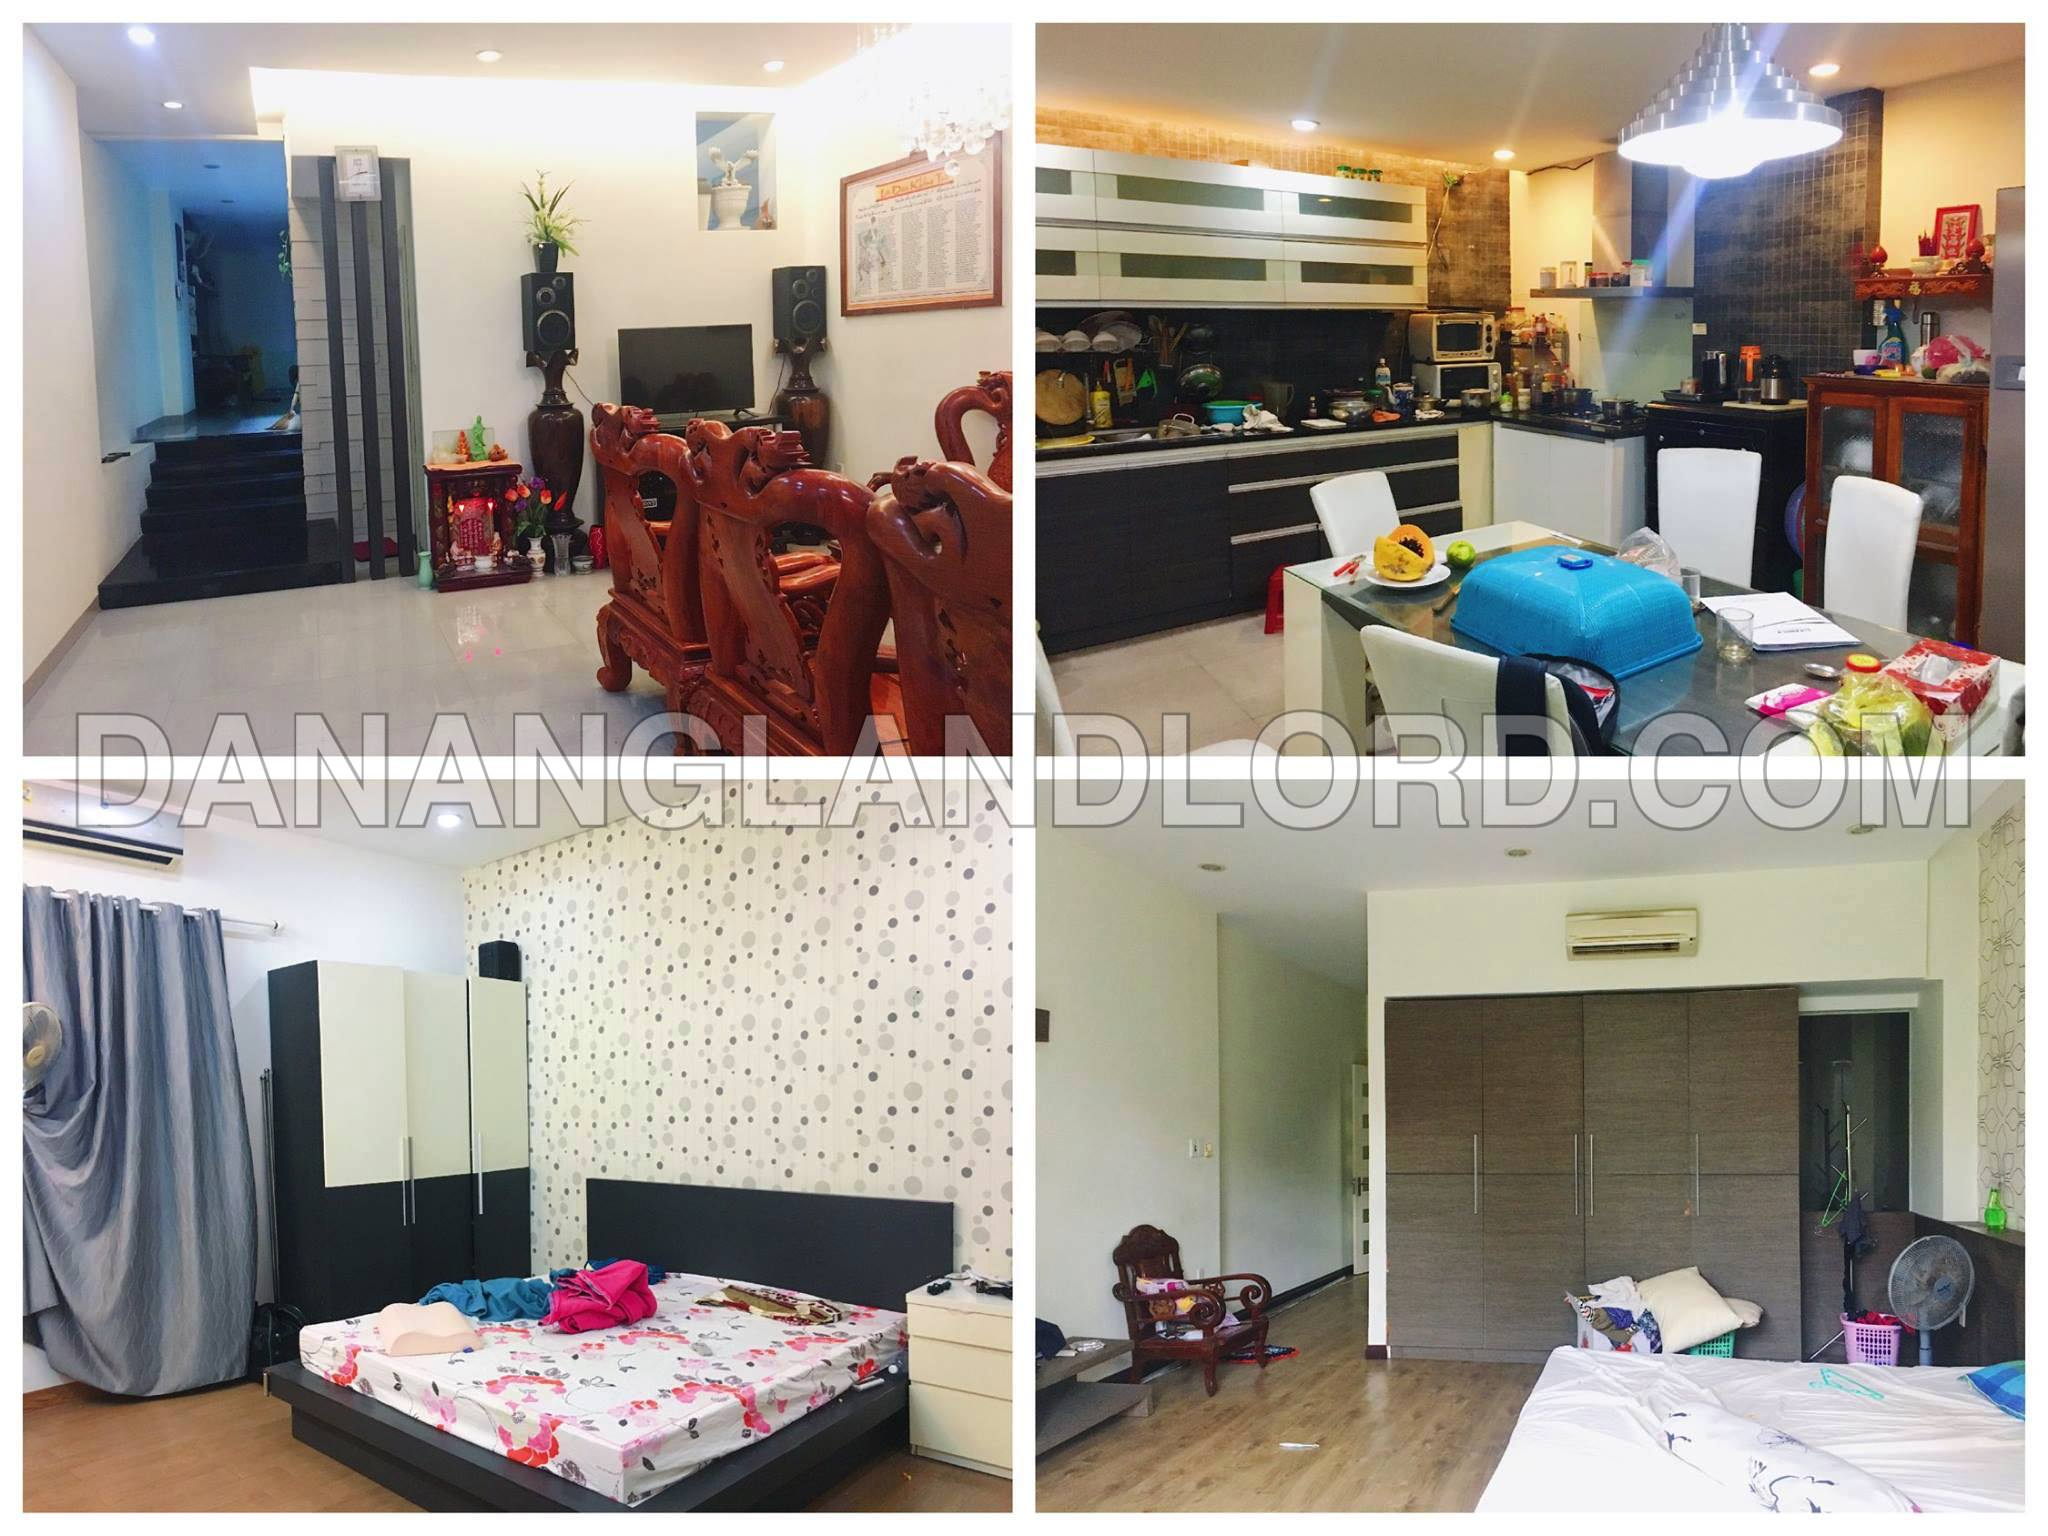 The 3 floor house with 5 bedrooms close to Pham Van Dong street